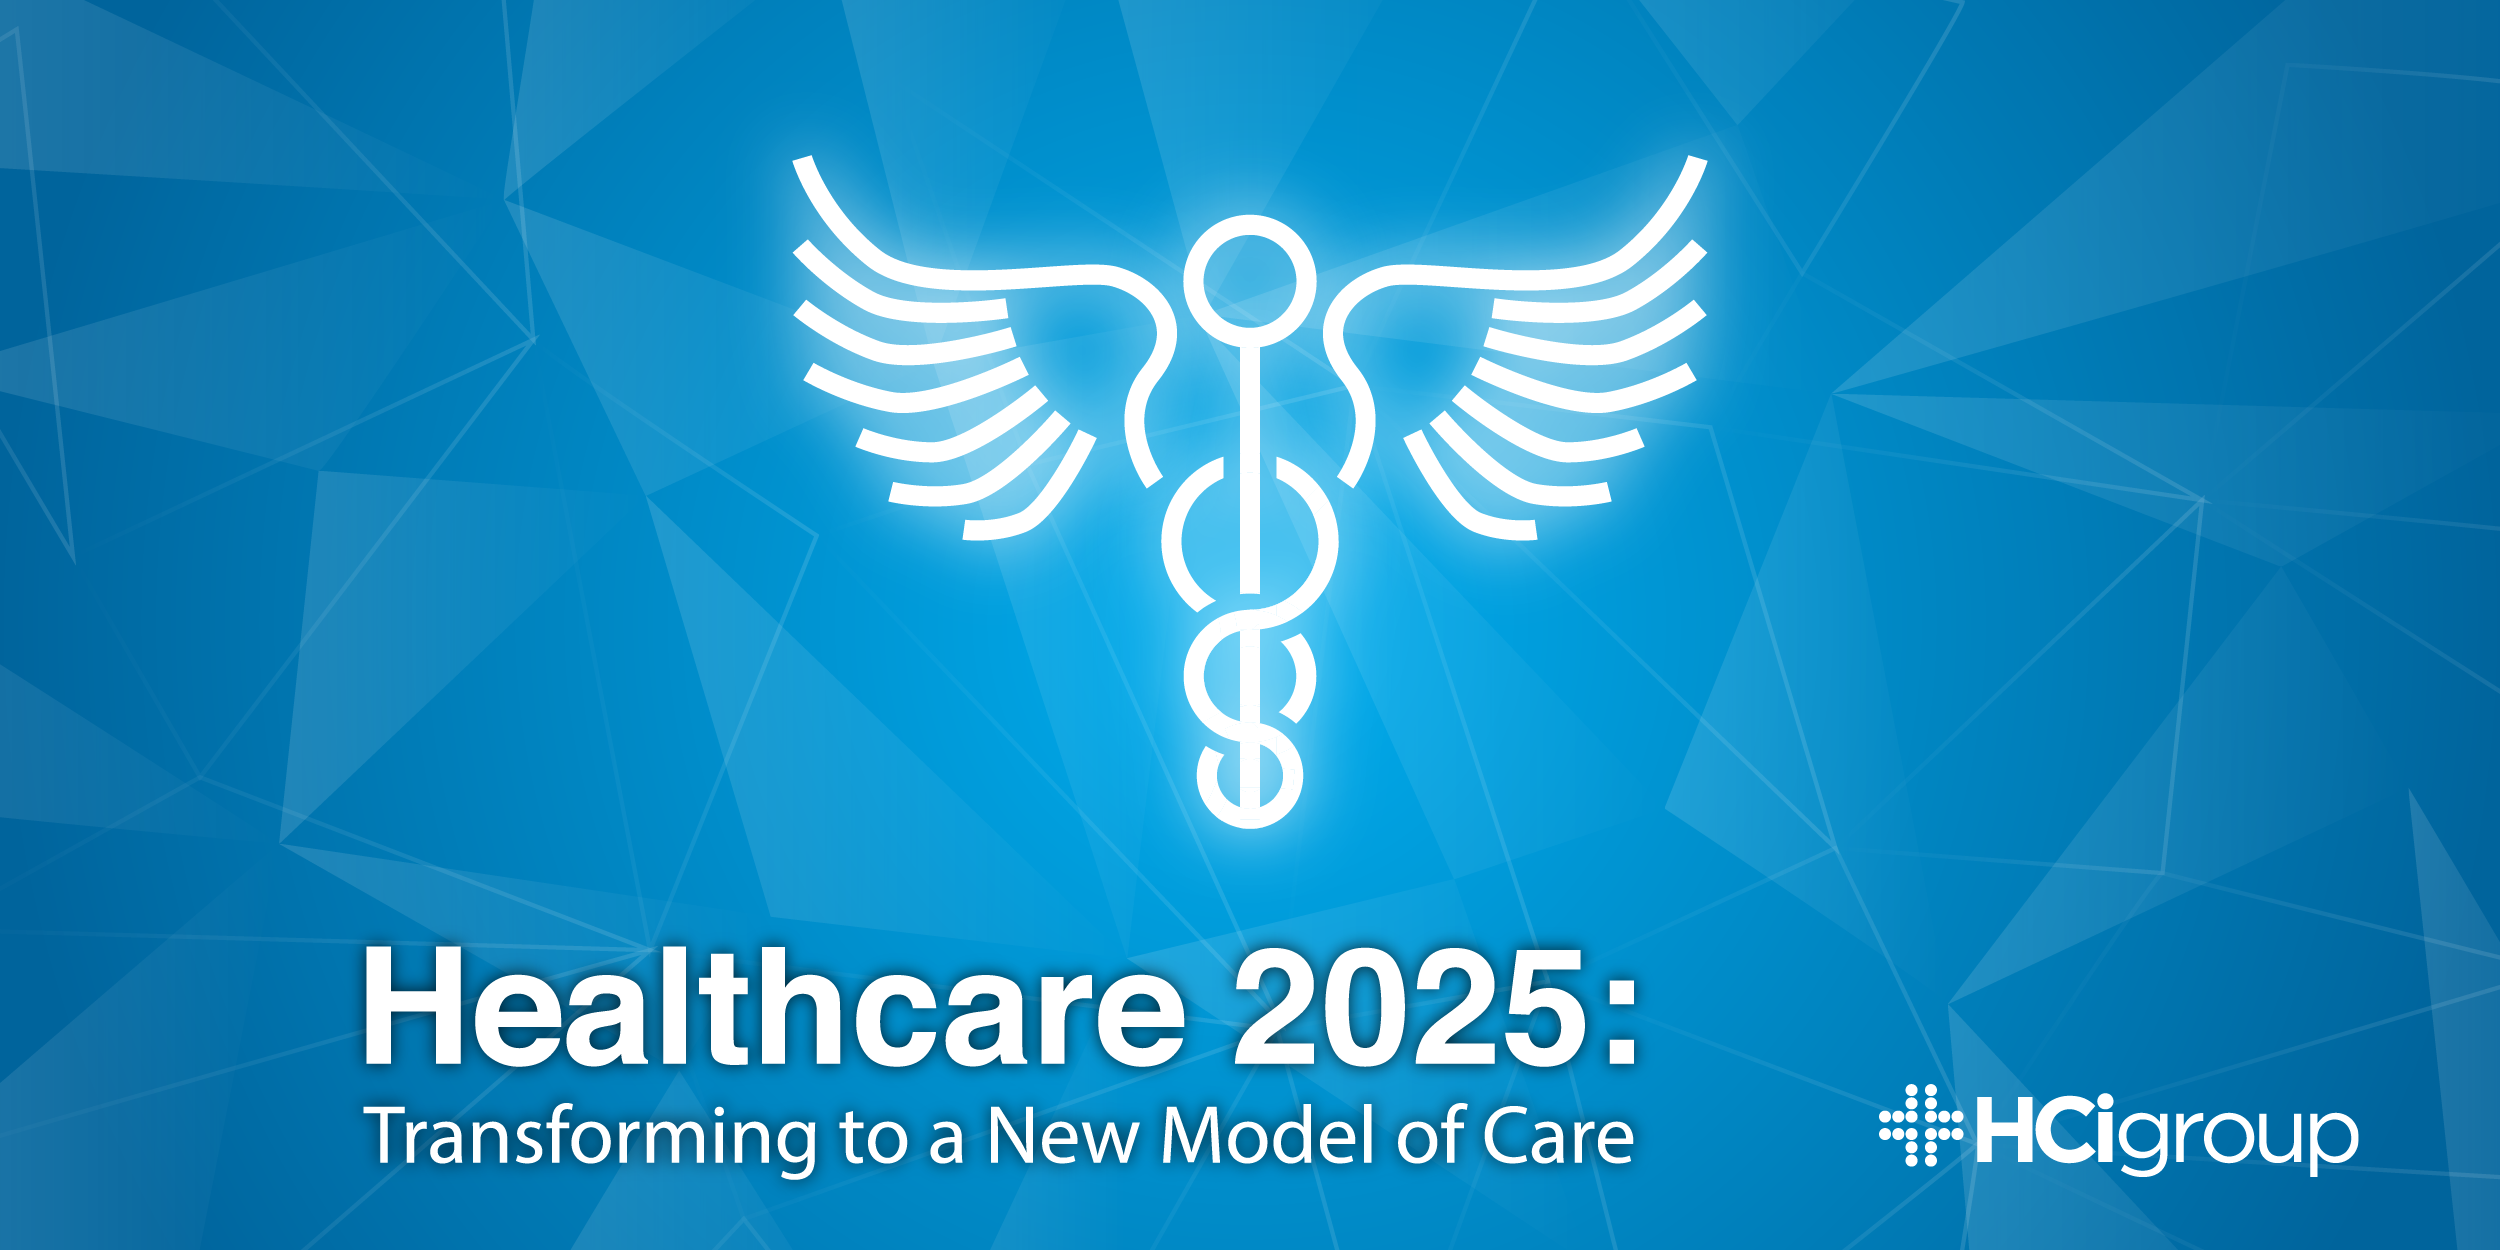 Healthcare 2025: Transforming to a New Model of Care